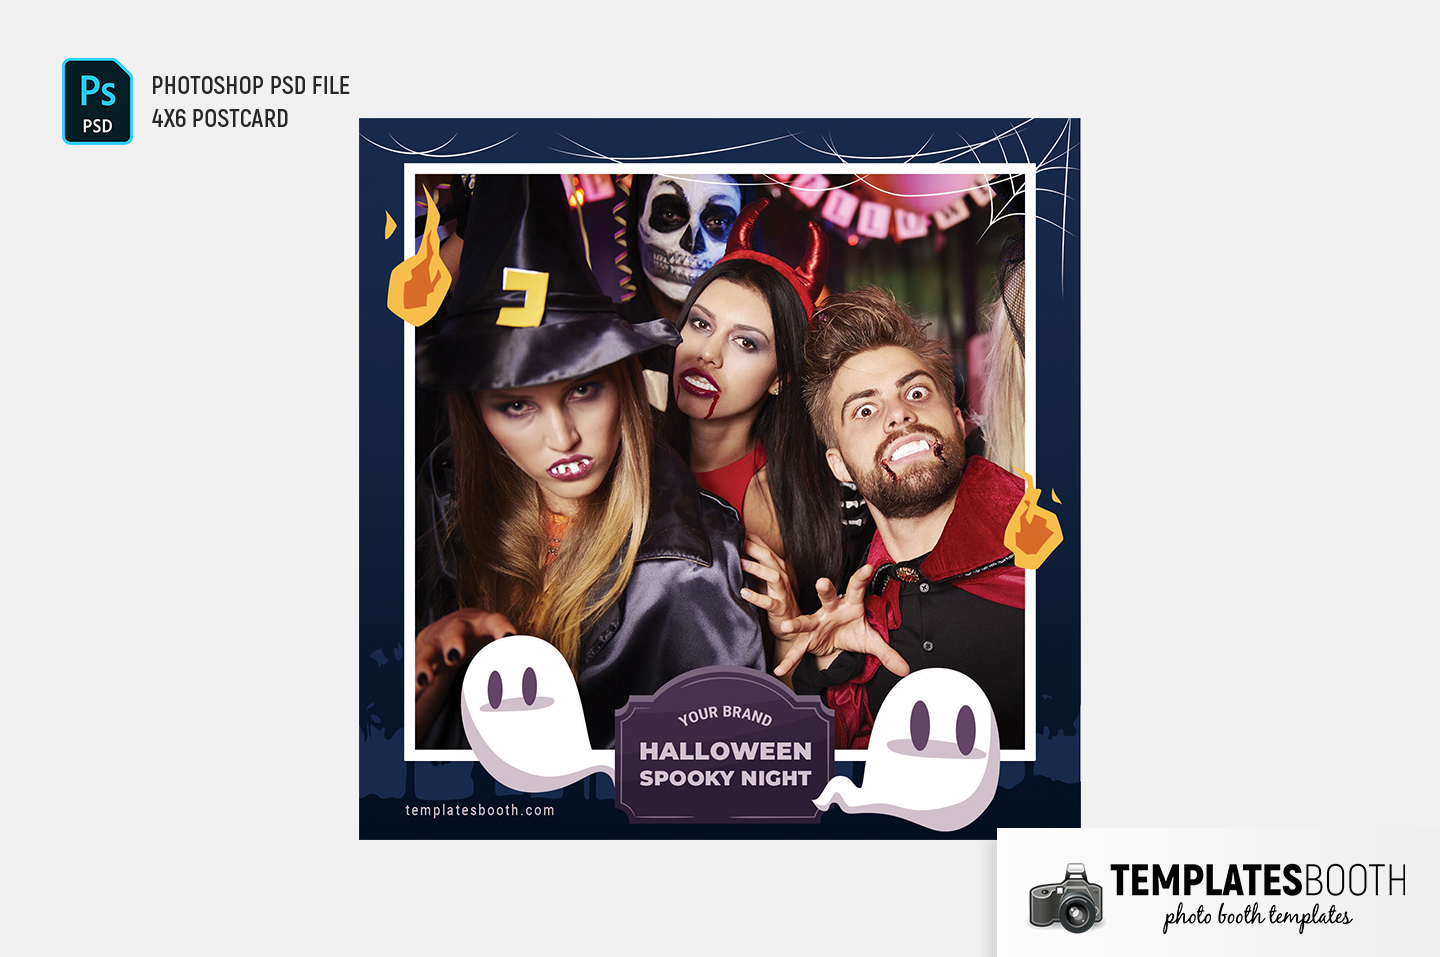 Halloween Spooky Night Photo Booth Template (Snappic)